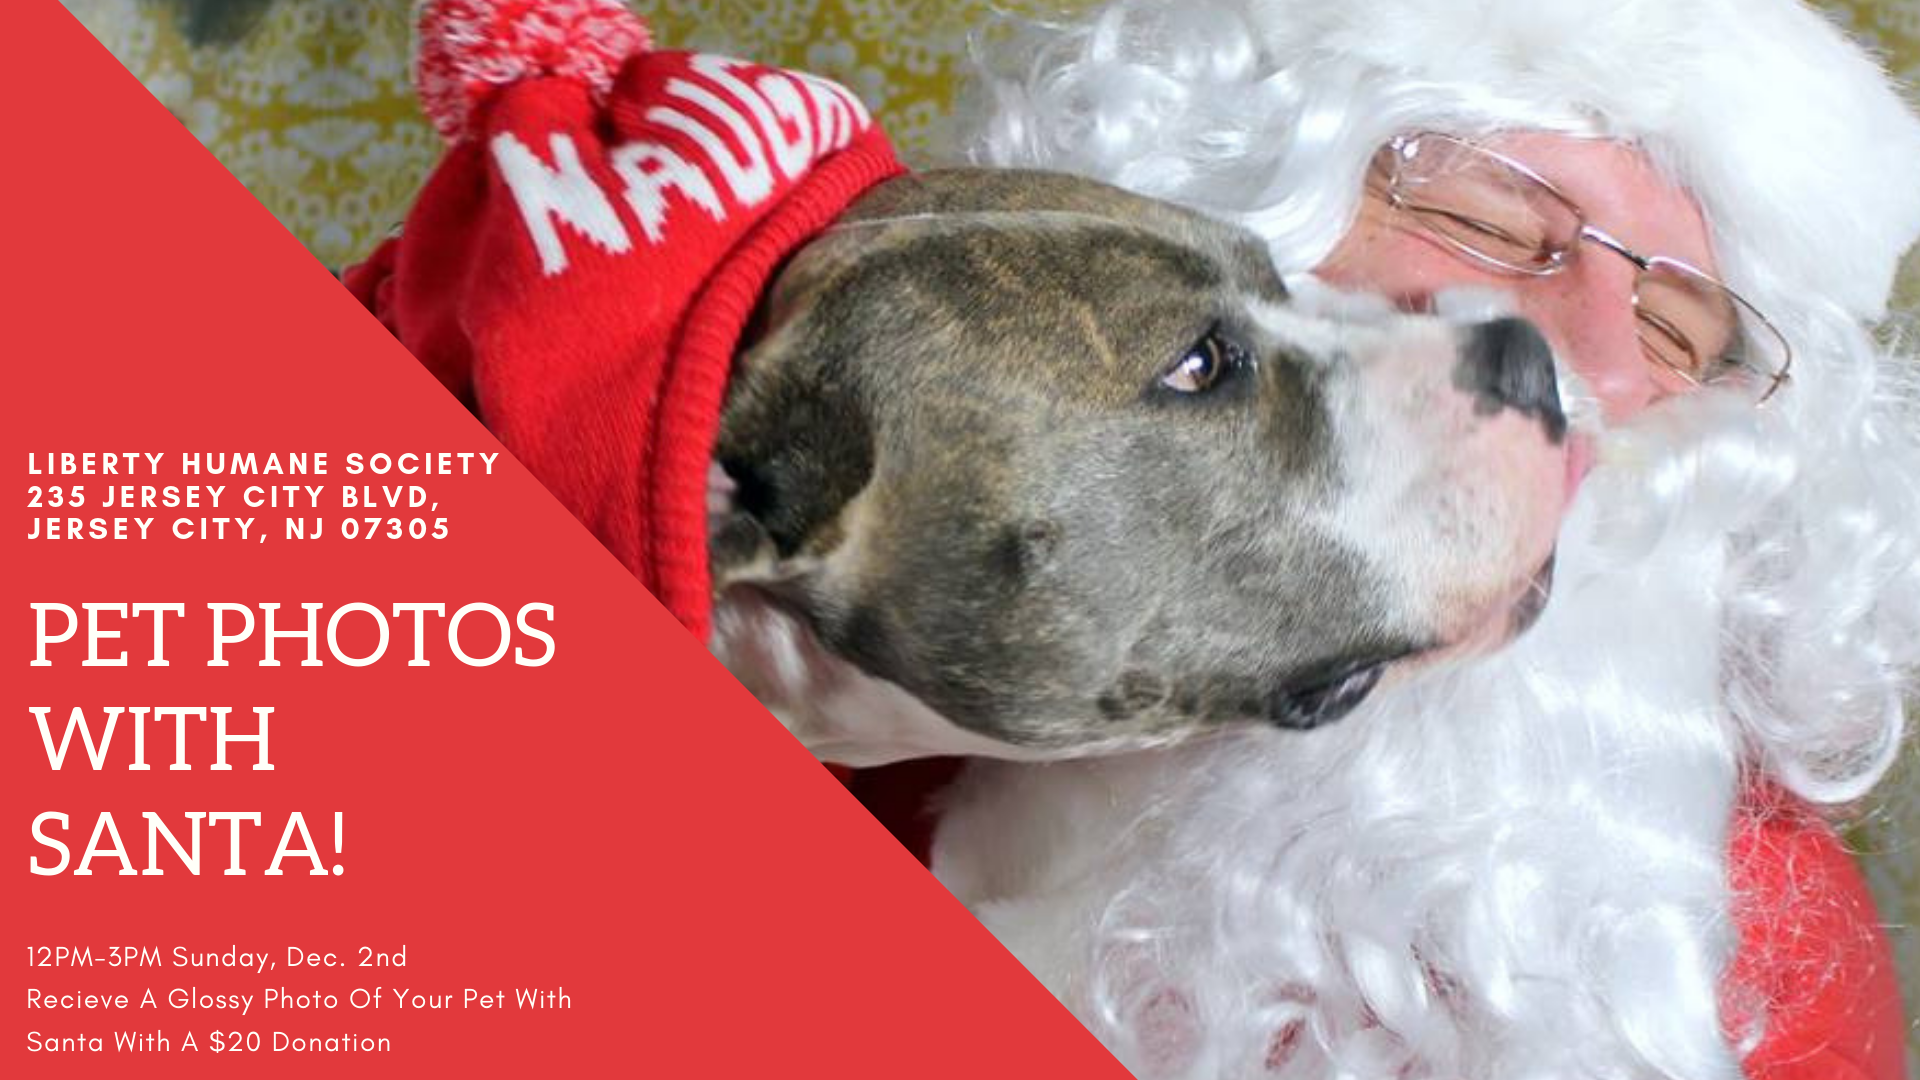 Copy_of_Copy_of_Pet_photos_with_santa_(2).png